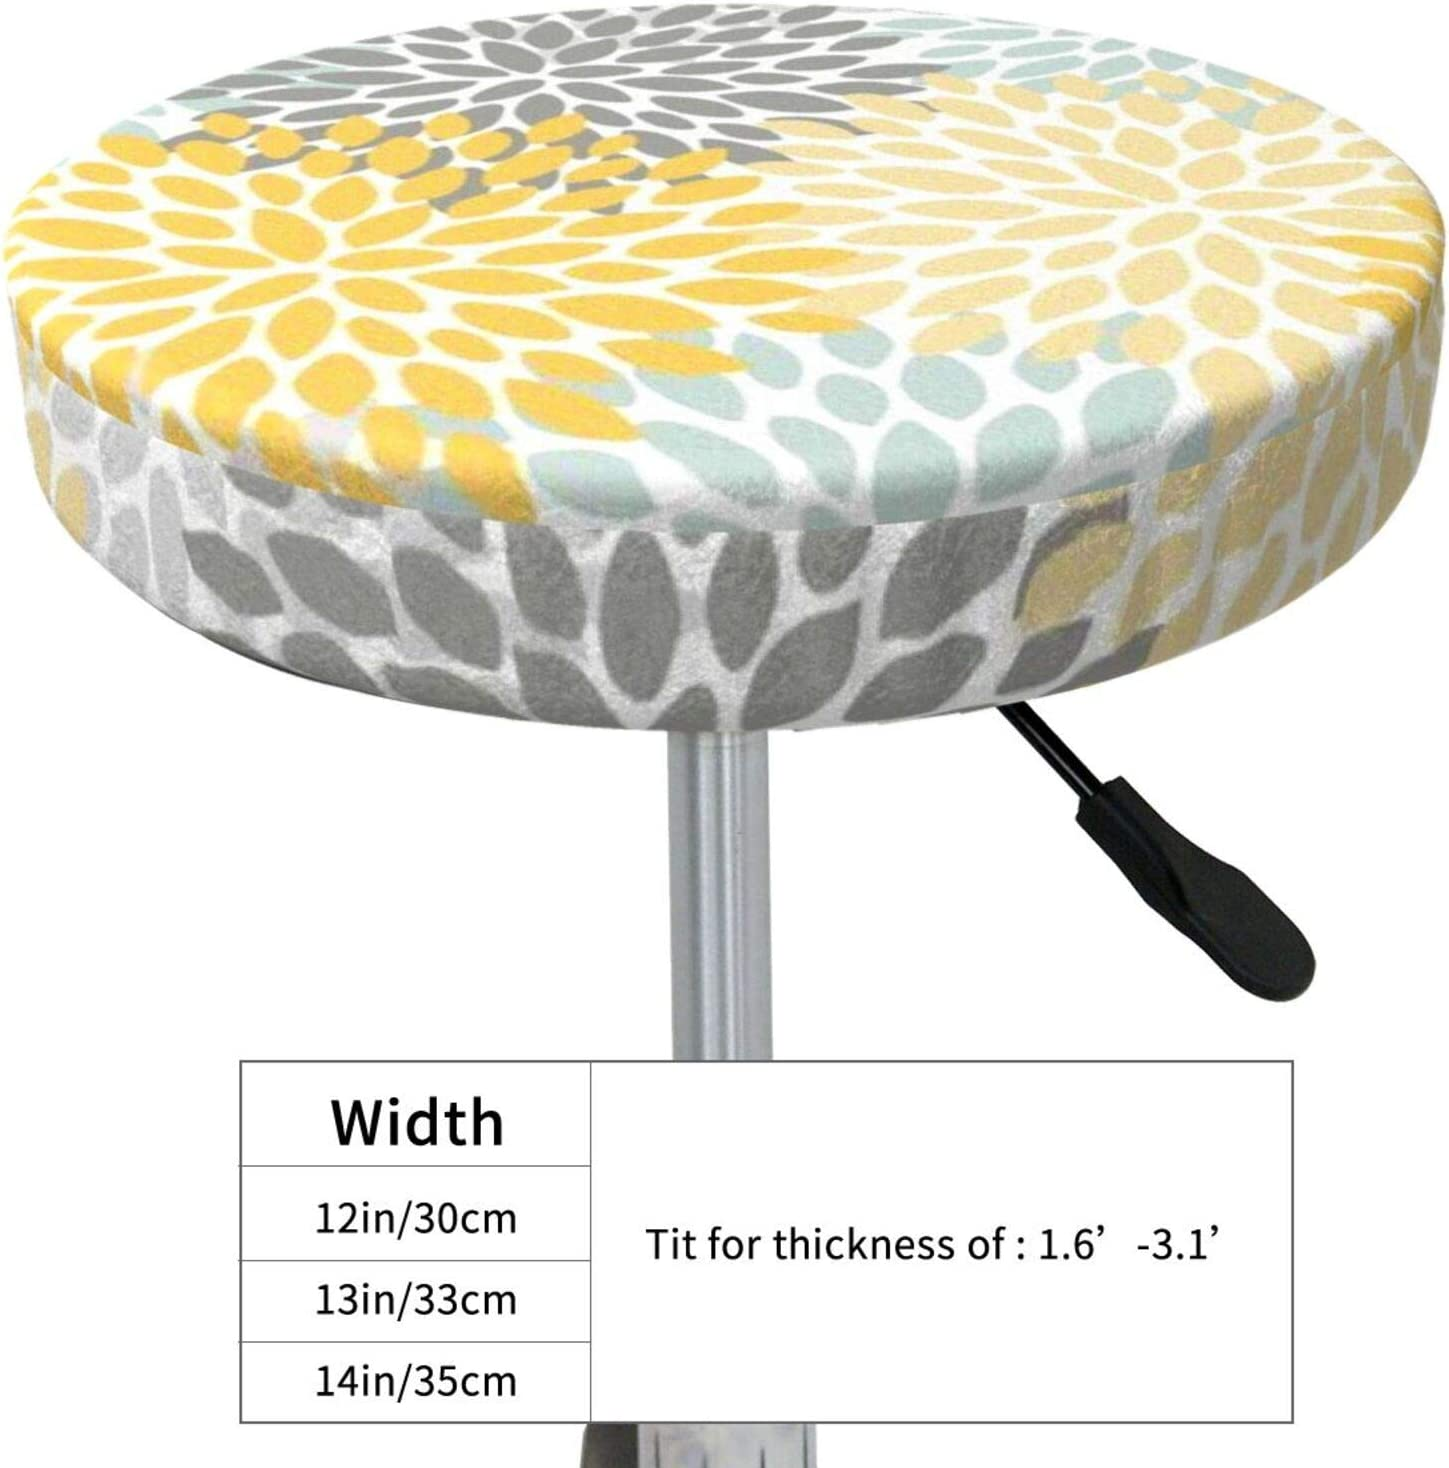 Yulian-ltd Washable Breathable Round Stool Cover,Floral Pattern Yellow Pale Aqua Blue and Gray Round Barstool Seat Covers Elastic Stool Cushion Slipcover 13 Inch